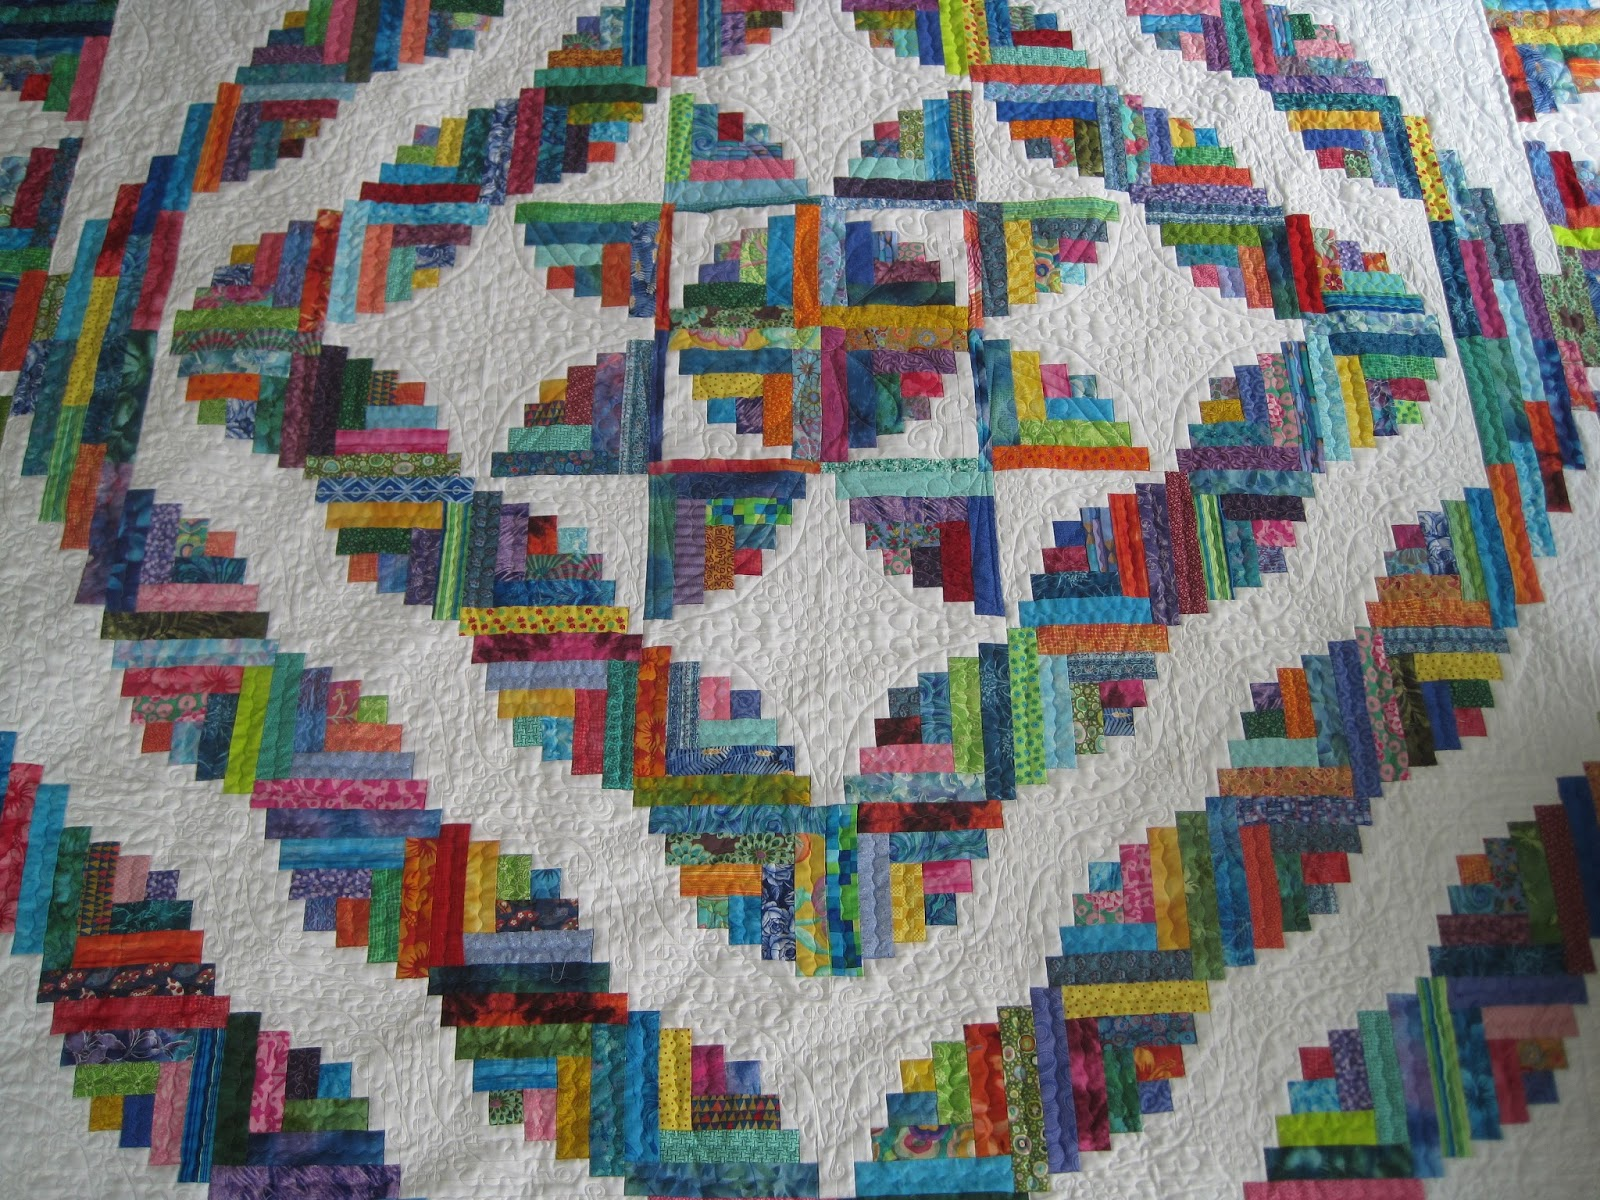 Post applique Tie And Overall Pattern 722790 additionally Evening Star Quilt Block additionally Turn Basics Collection Bloomers Pattern together with How To Make A Baby Quilt From Receiving Blankets furthermore Jacquard. on baby quilt patterns